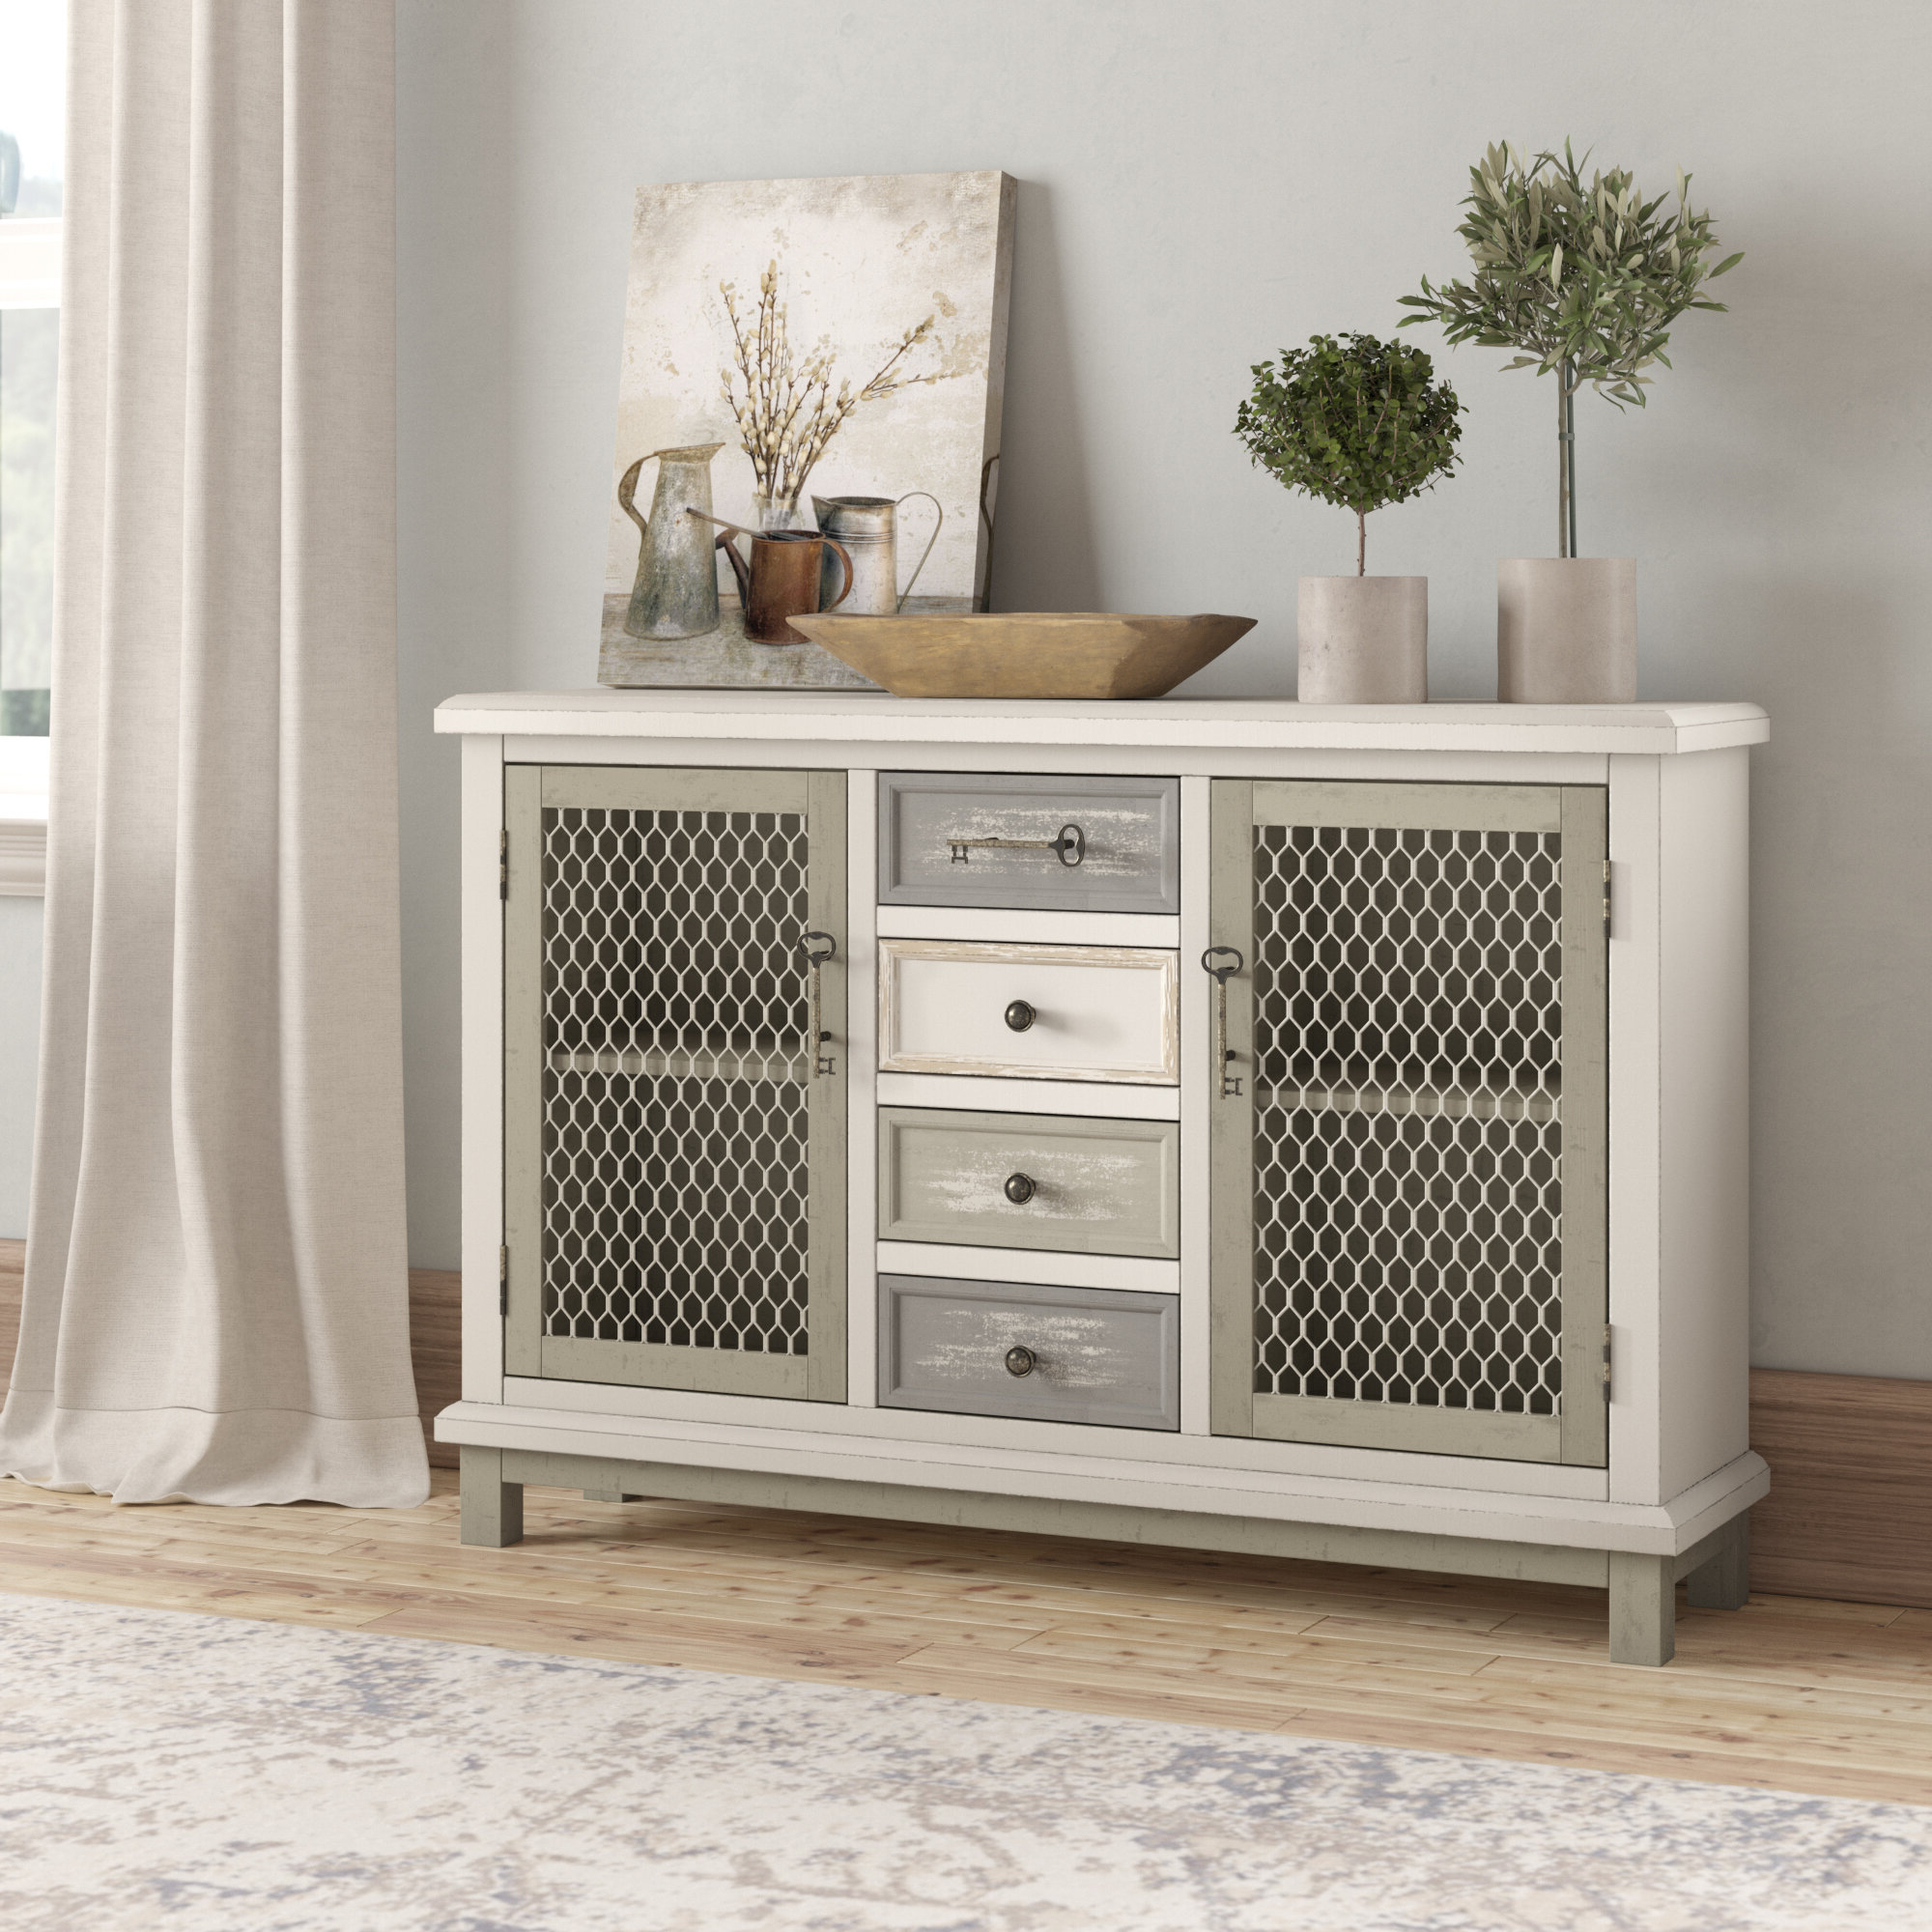 2 Door Buffet | Wayfair Throughout Candace Door Credenzas (View 1 of 20)